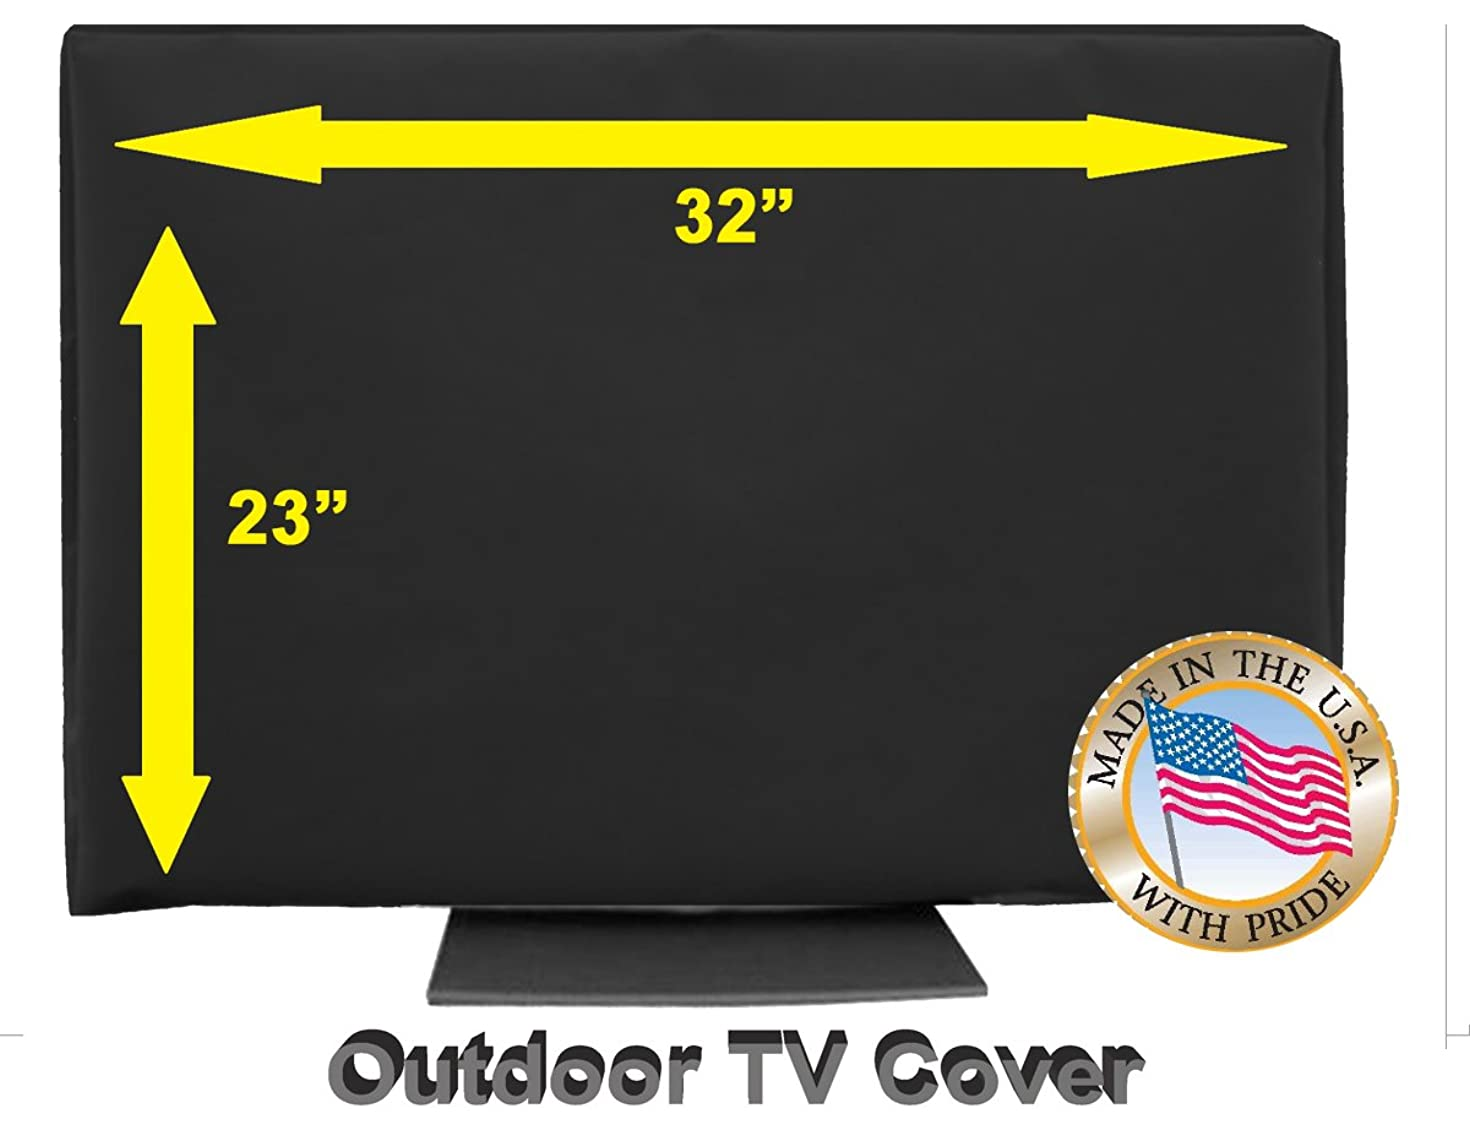 OUTDOOR TV COVER (32, Black (Not For Direct Sun))